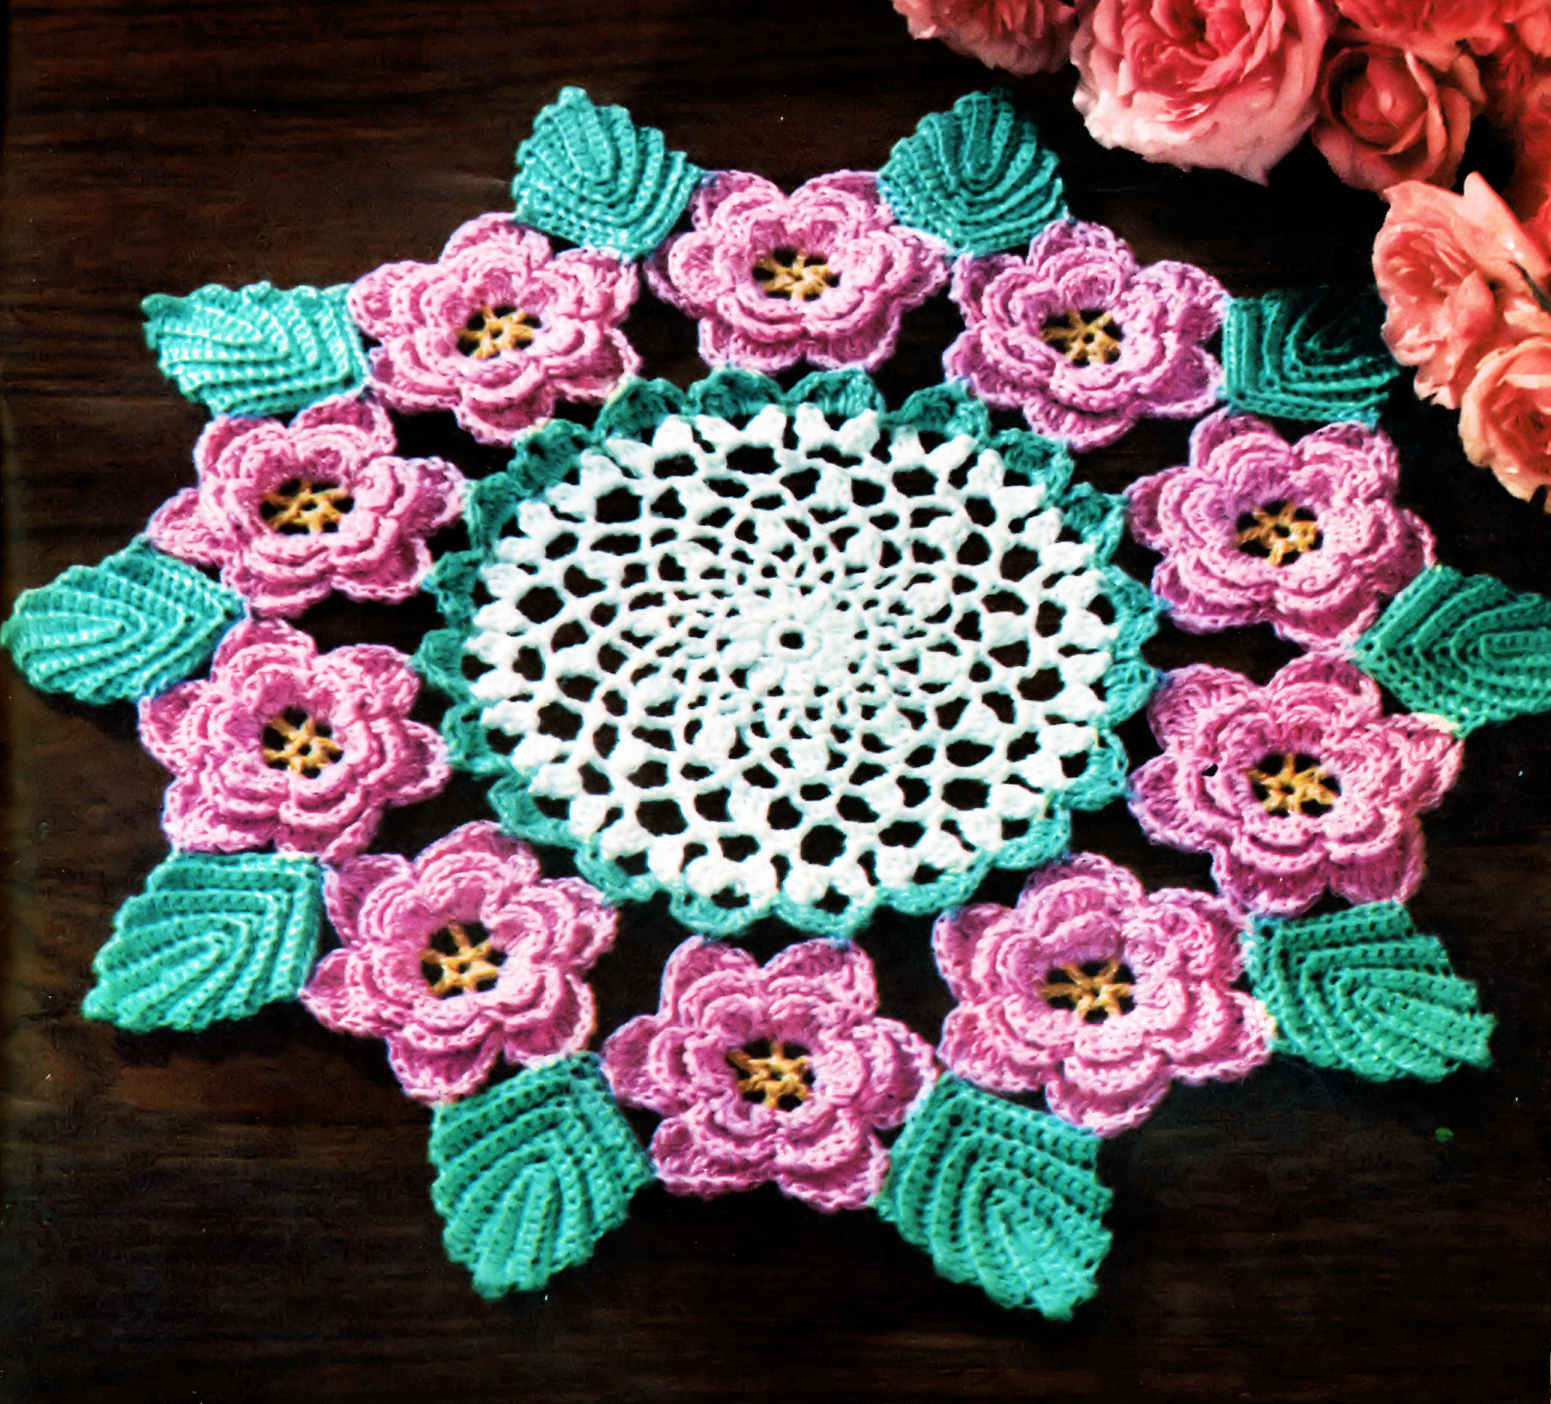 Rose Bench Decoration Free Crochet Pattern | Free Crochet Patterns